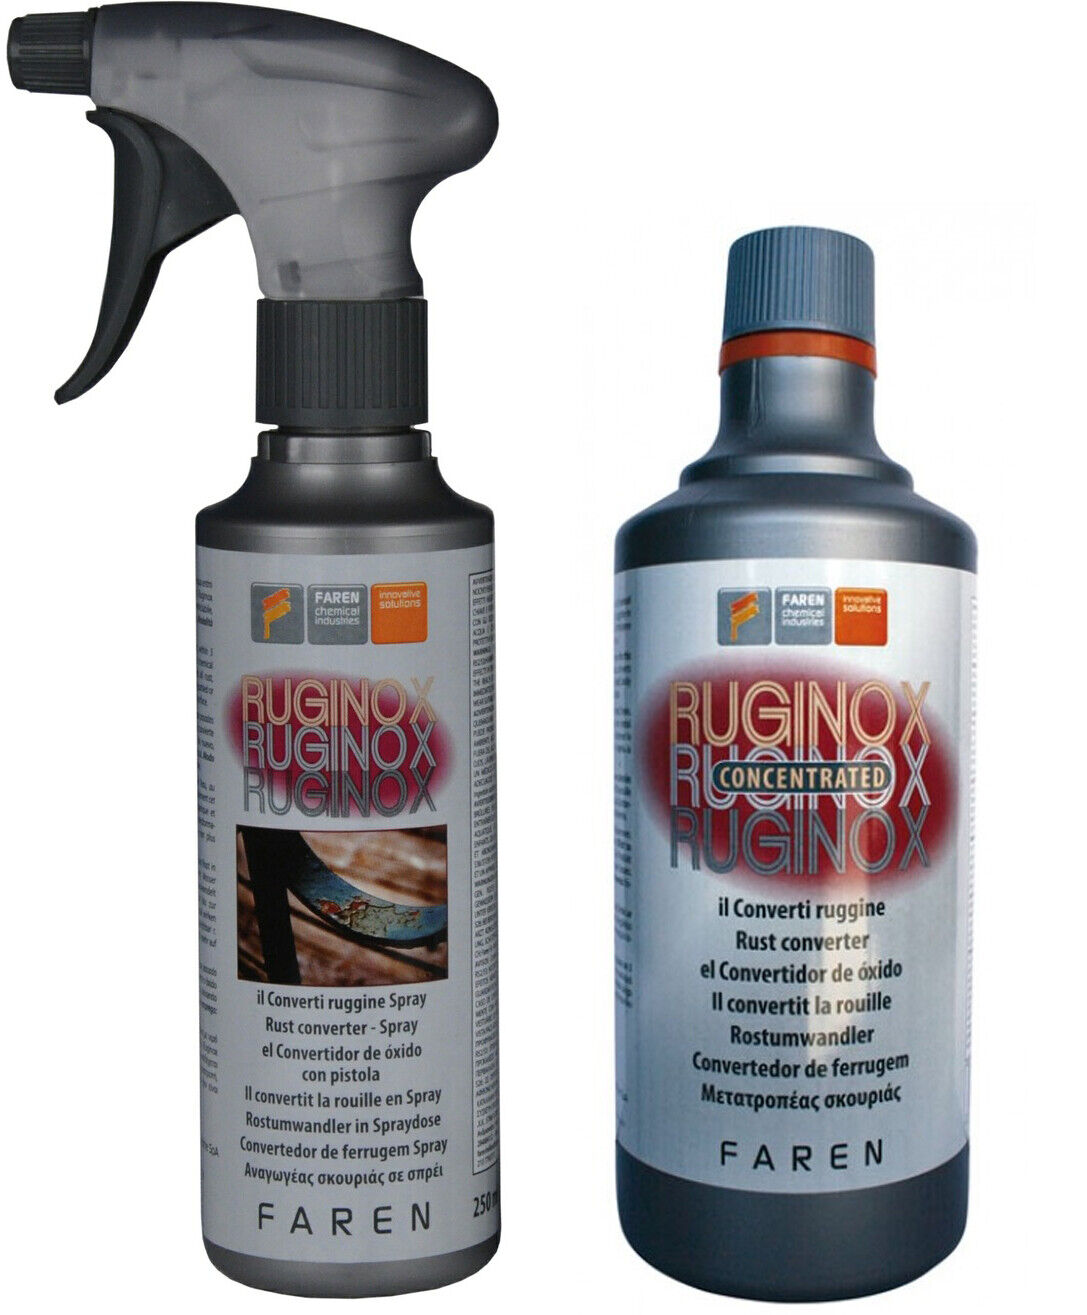 CONVERTITORE DI RUGGINE RUGINE ANTIRUGGINE CONVERTIRUGGINE FAREN RAPIDO SPRAY